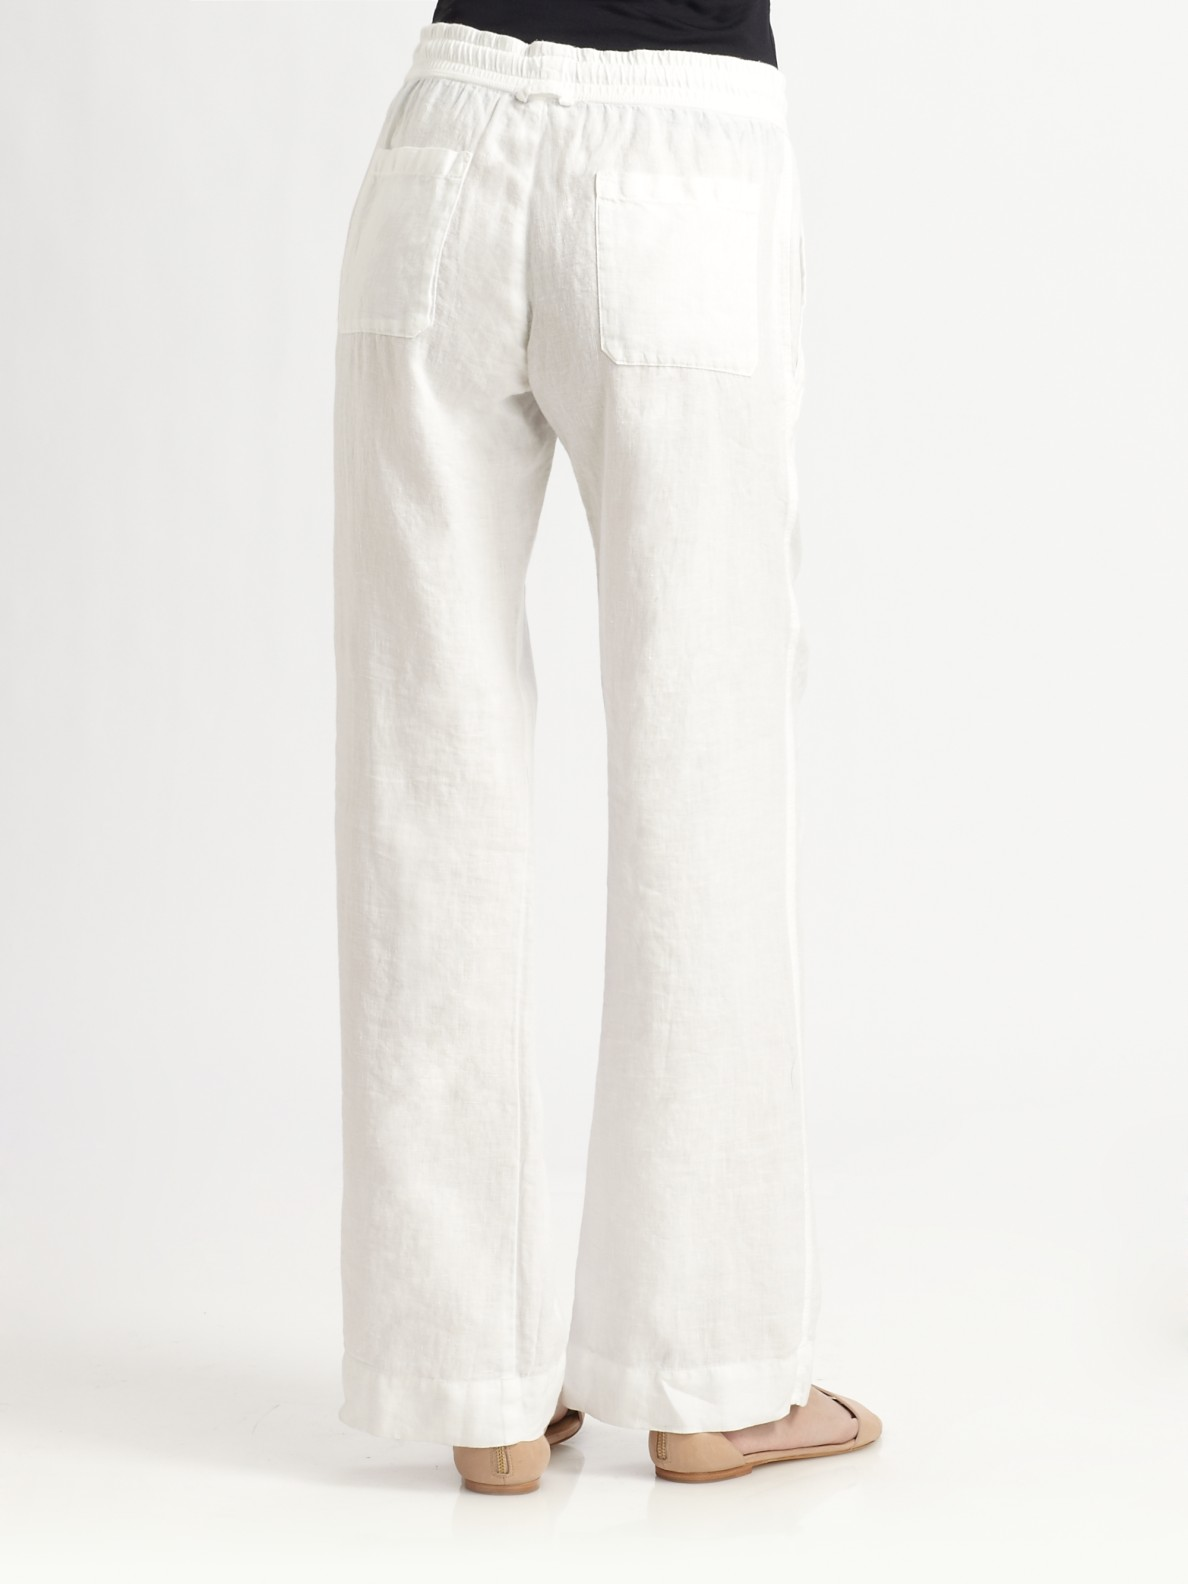 Lyst James Perse Linen Drawstring Pants In White